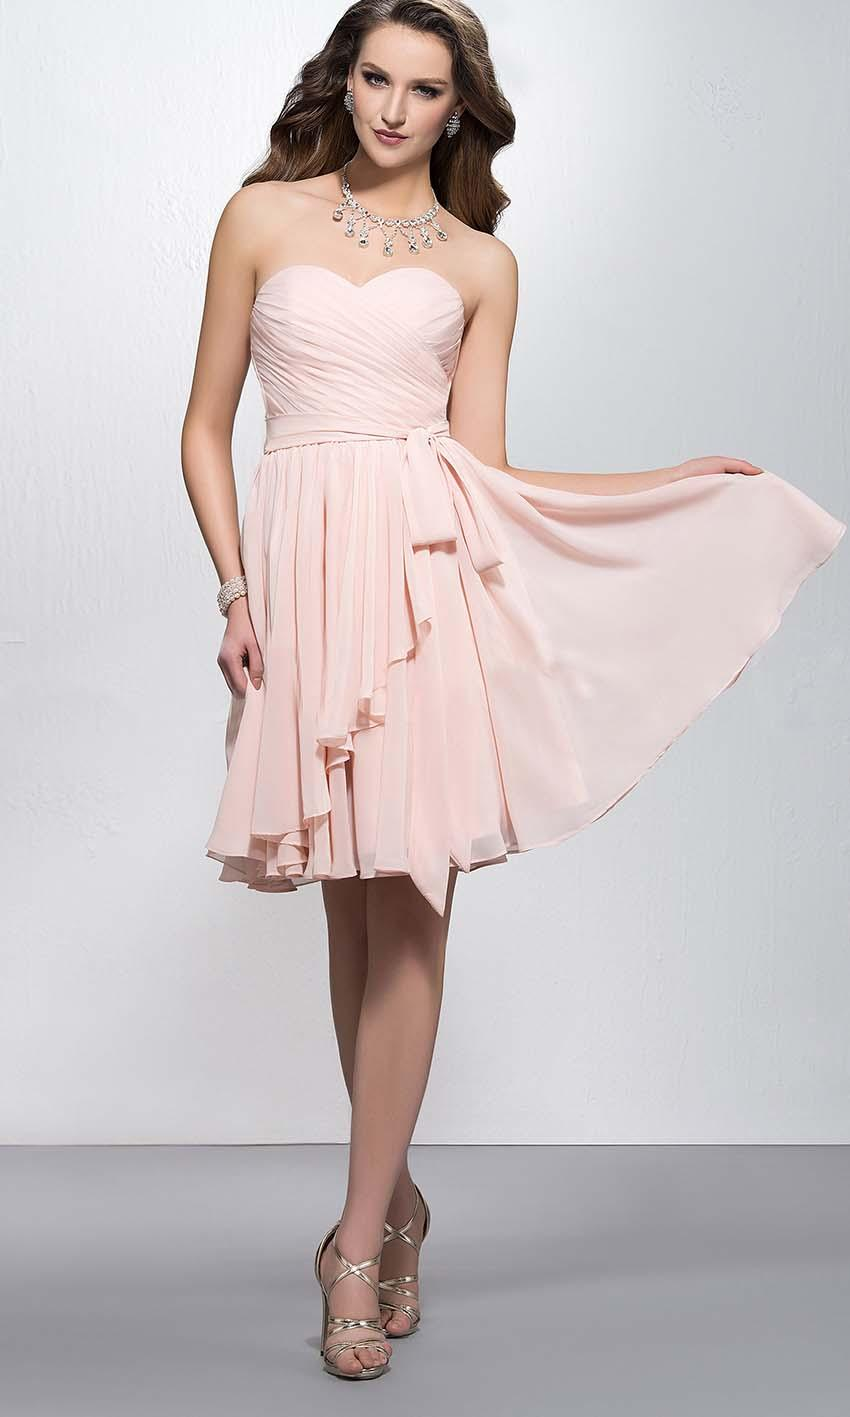 79d829ce86 Light Pink Sweetheart Ruffled Short Bridesmaid Dresses KSP390  KSP390  -  £77.00   Cheap Prom Dresses Uk